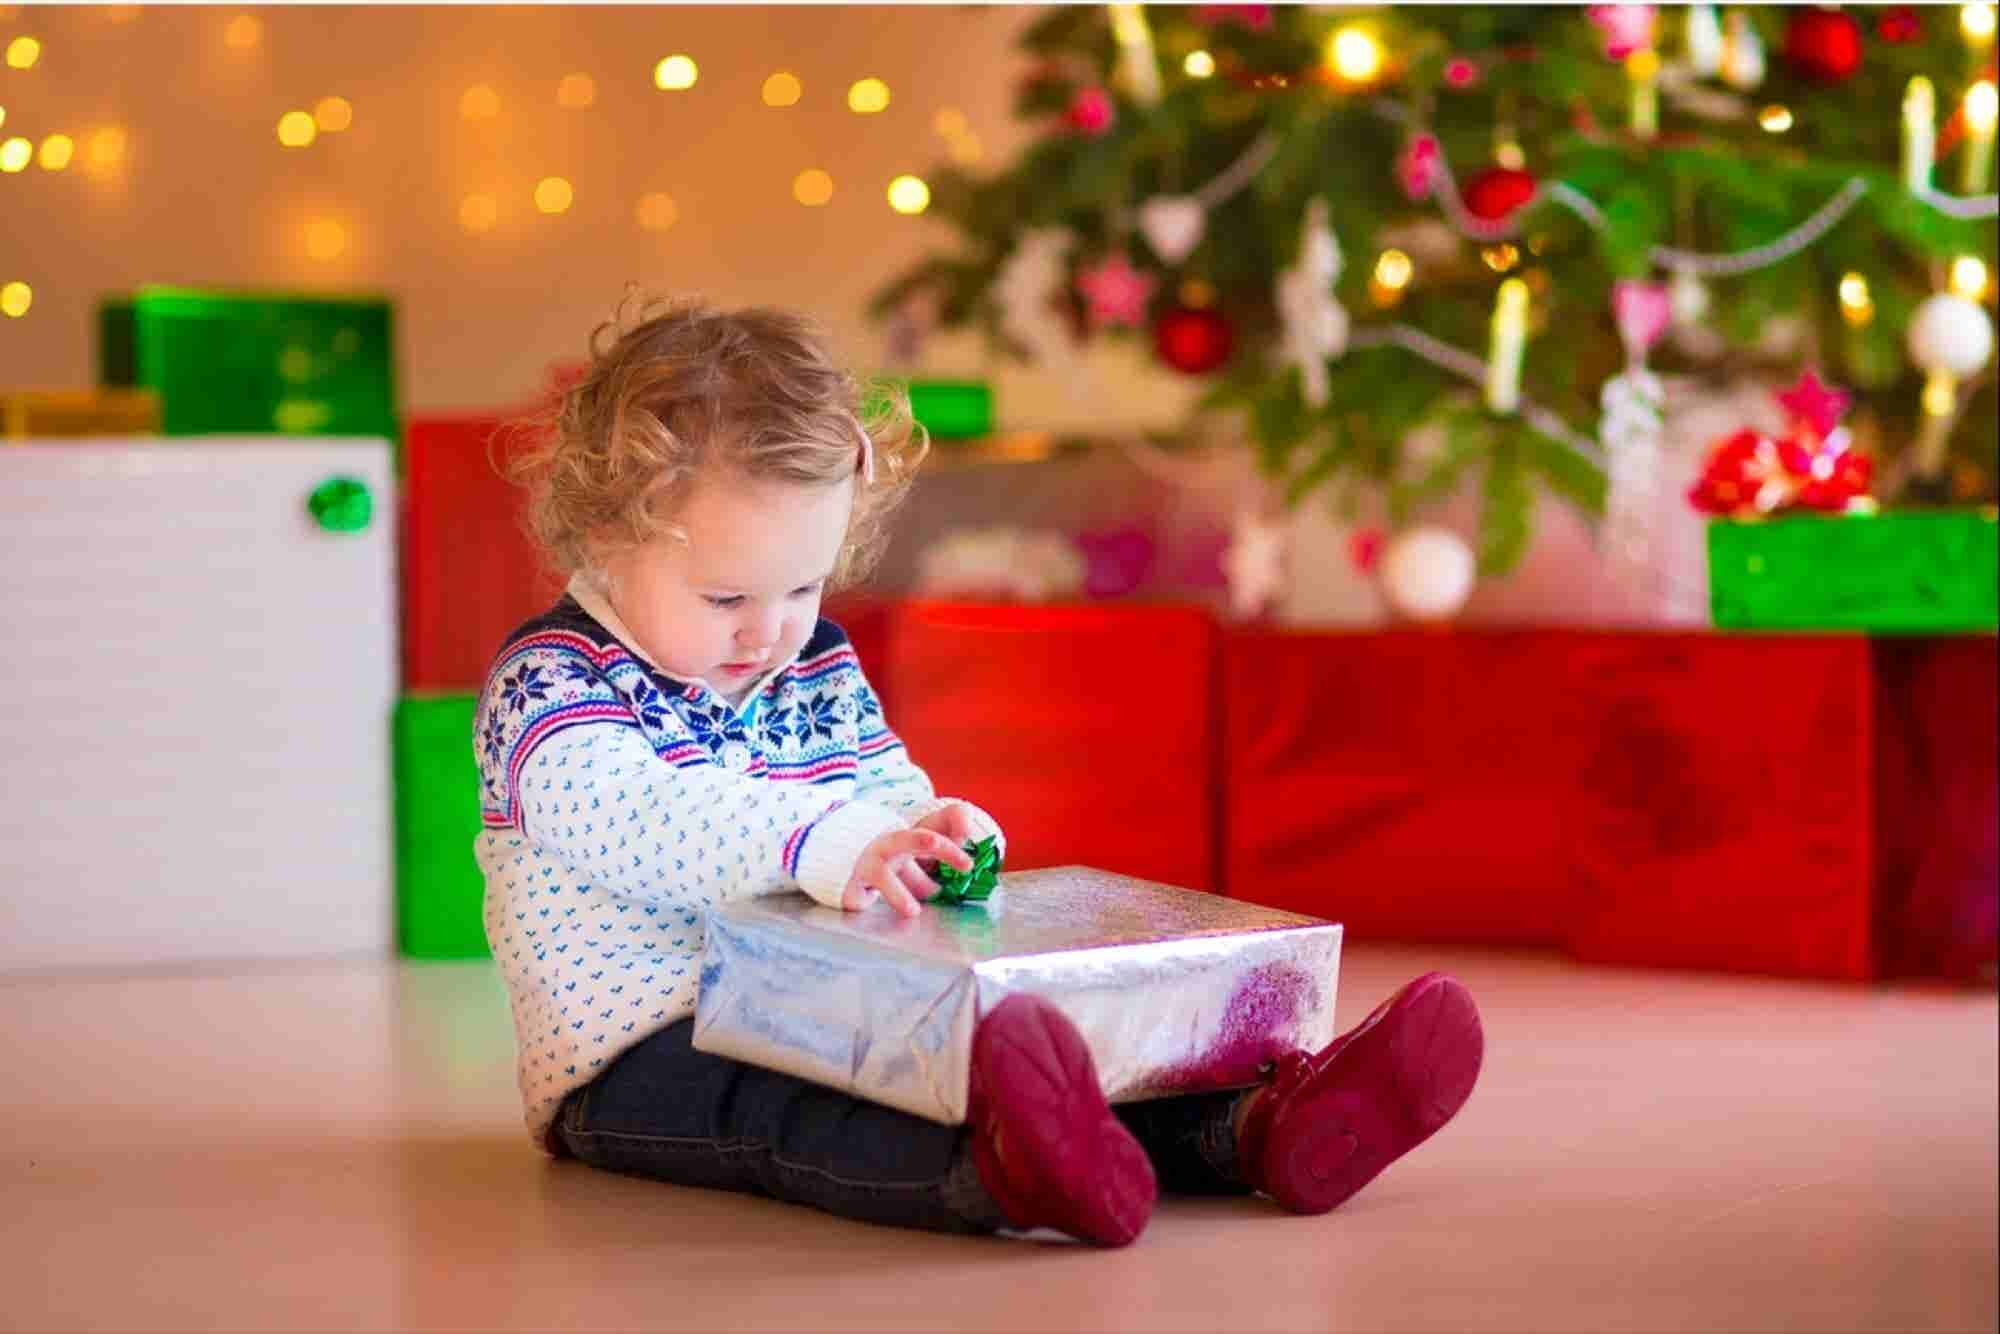 #3 Consumer Outreach Strategies This Holiday Season for Your Business